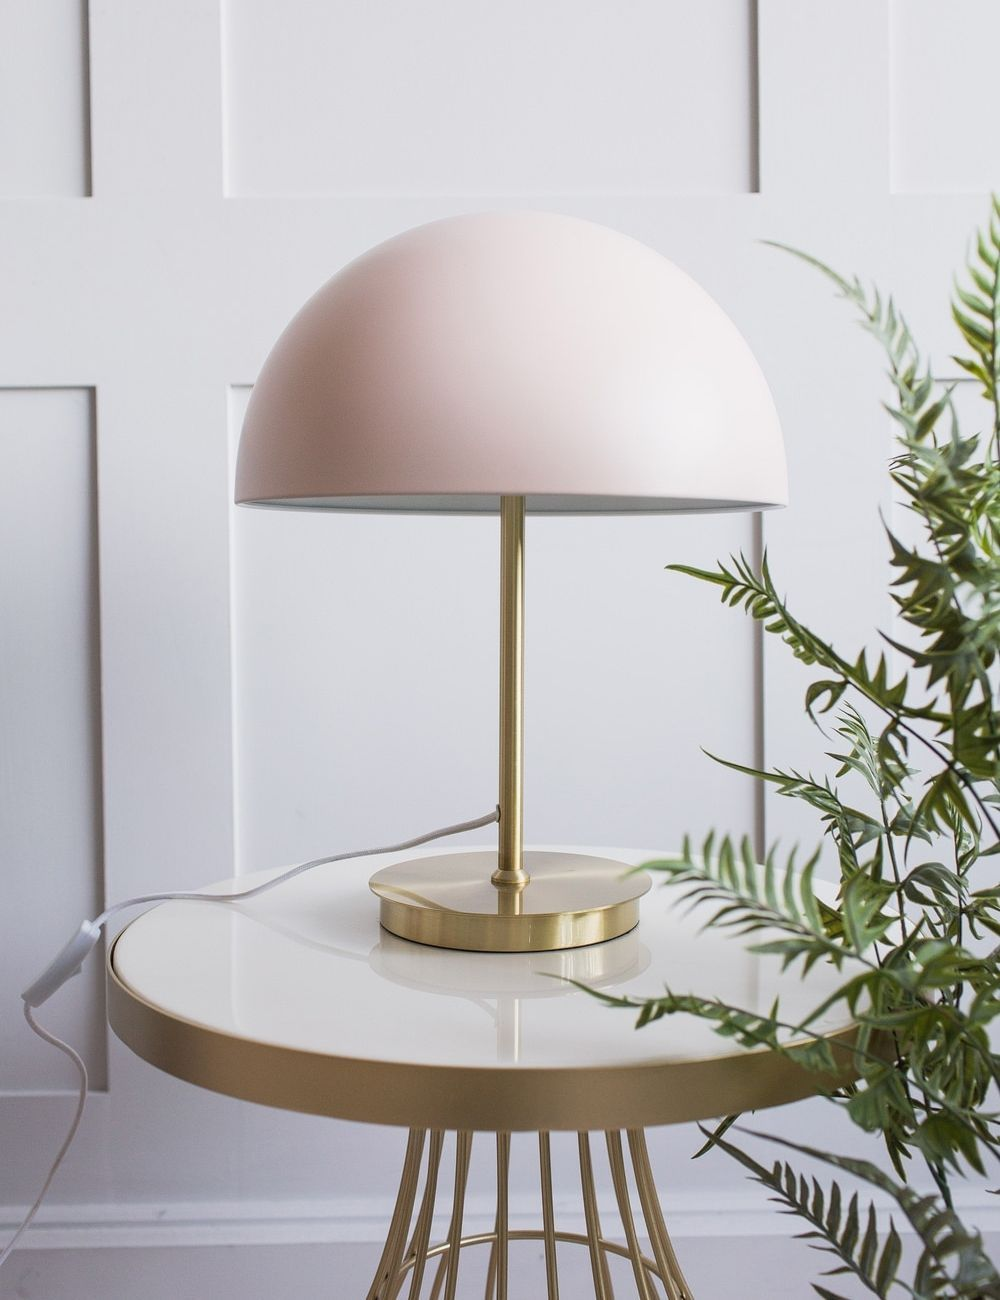 This Cute Little Metal Lamp Is Perfect For Placing On A Bedside